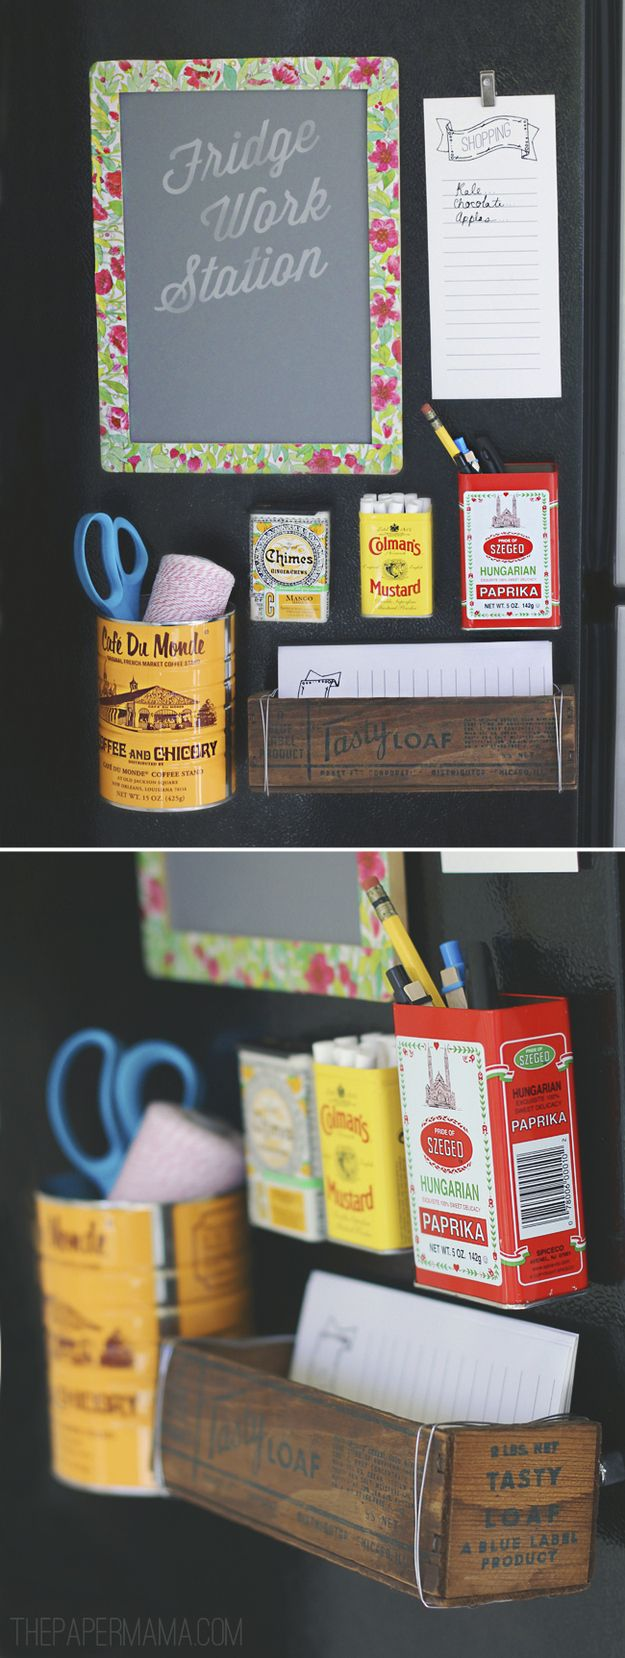 Fridge Work Station | 50 Clever DIY Ways To Organize Your Entire Life